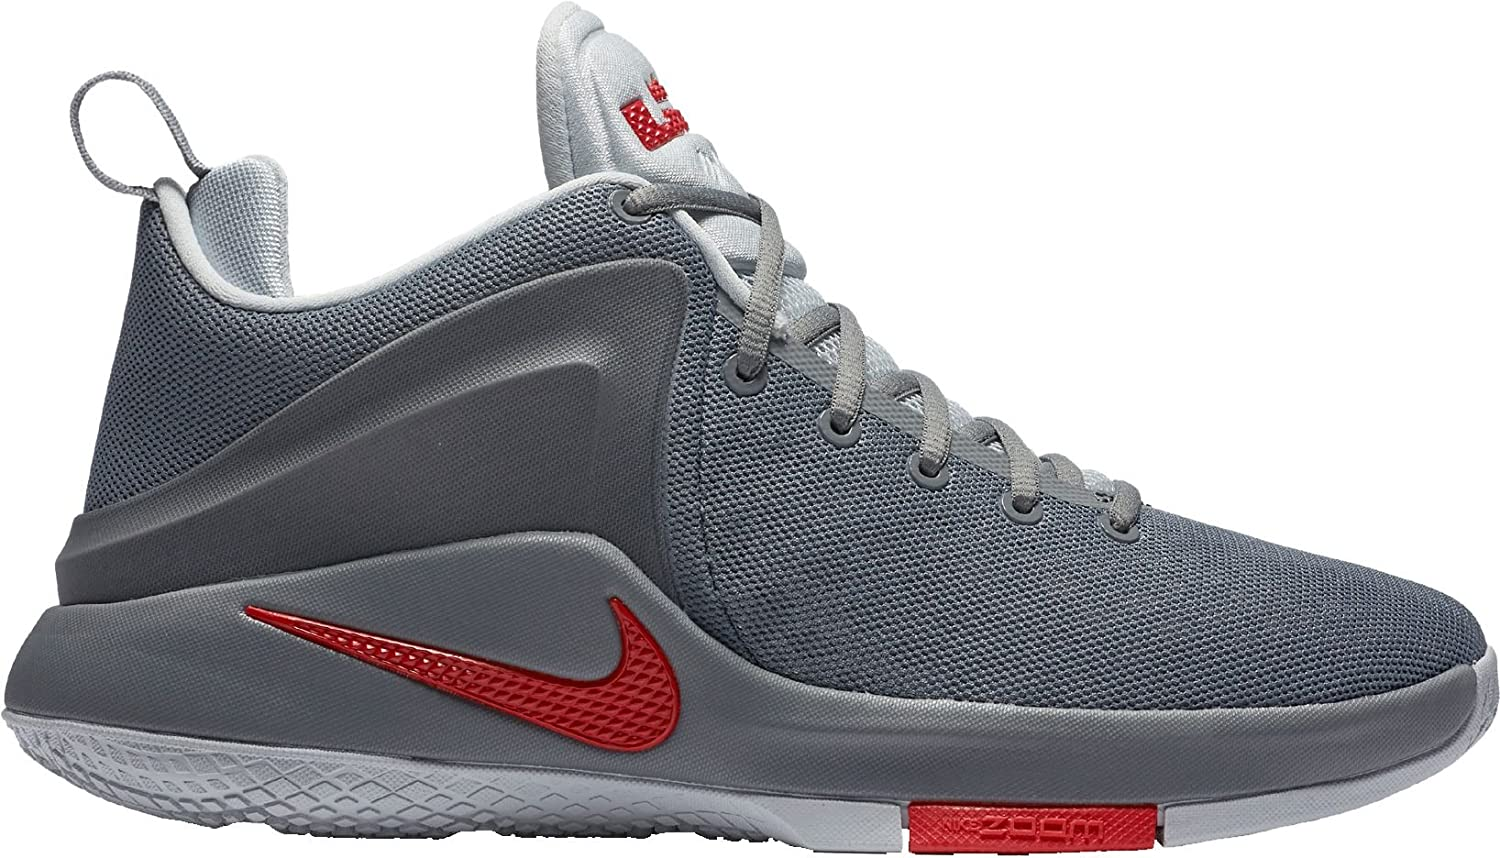 official site exquisite style official store Amazon.com | Nike Mens Lebron Zoom Witness Sneakers (Grey/Red, 14 ...